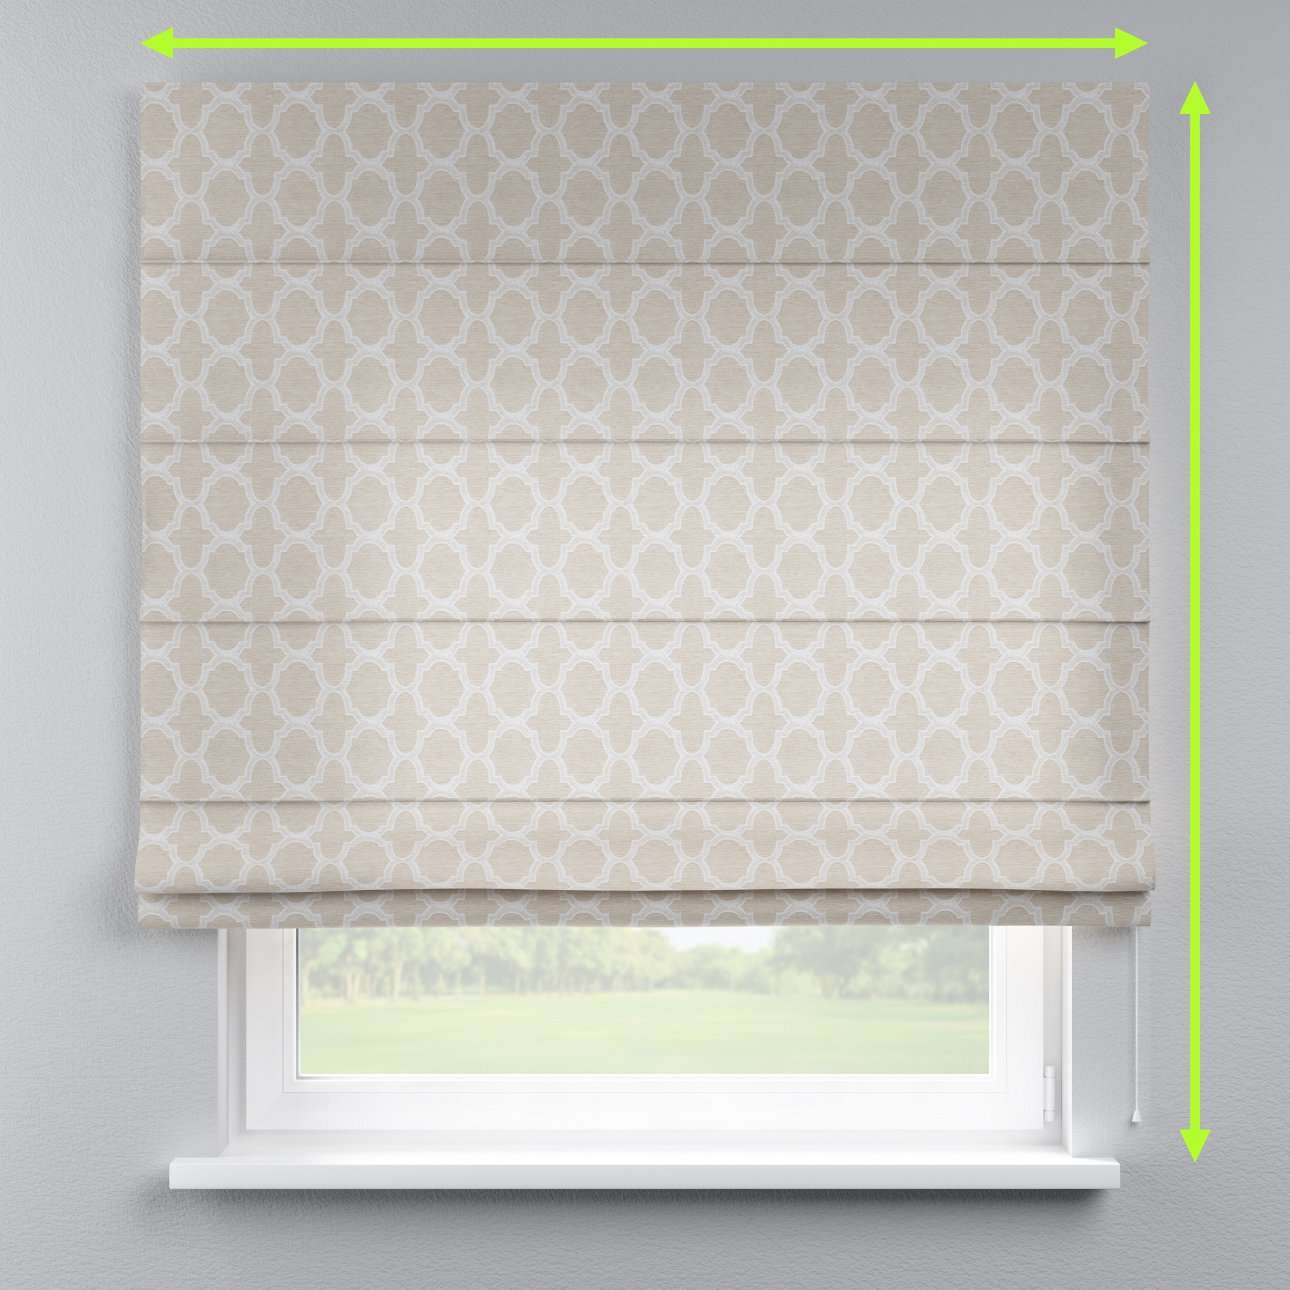 Capri roman blind in collection Rustica, fabric: 138-25